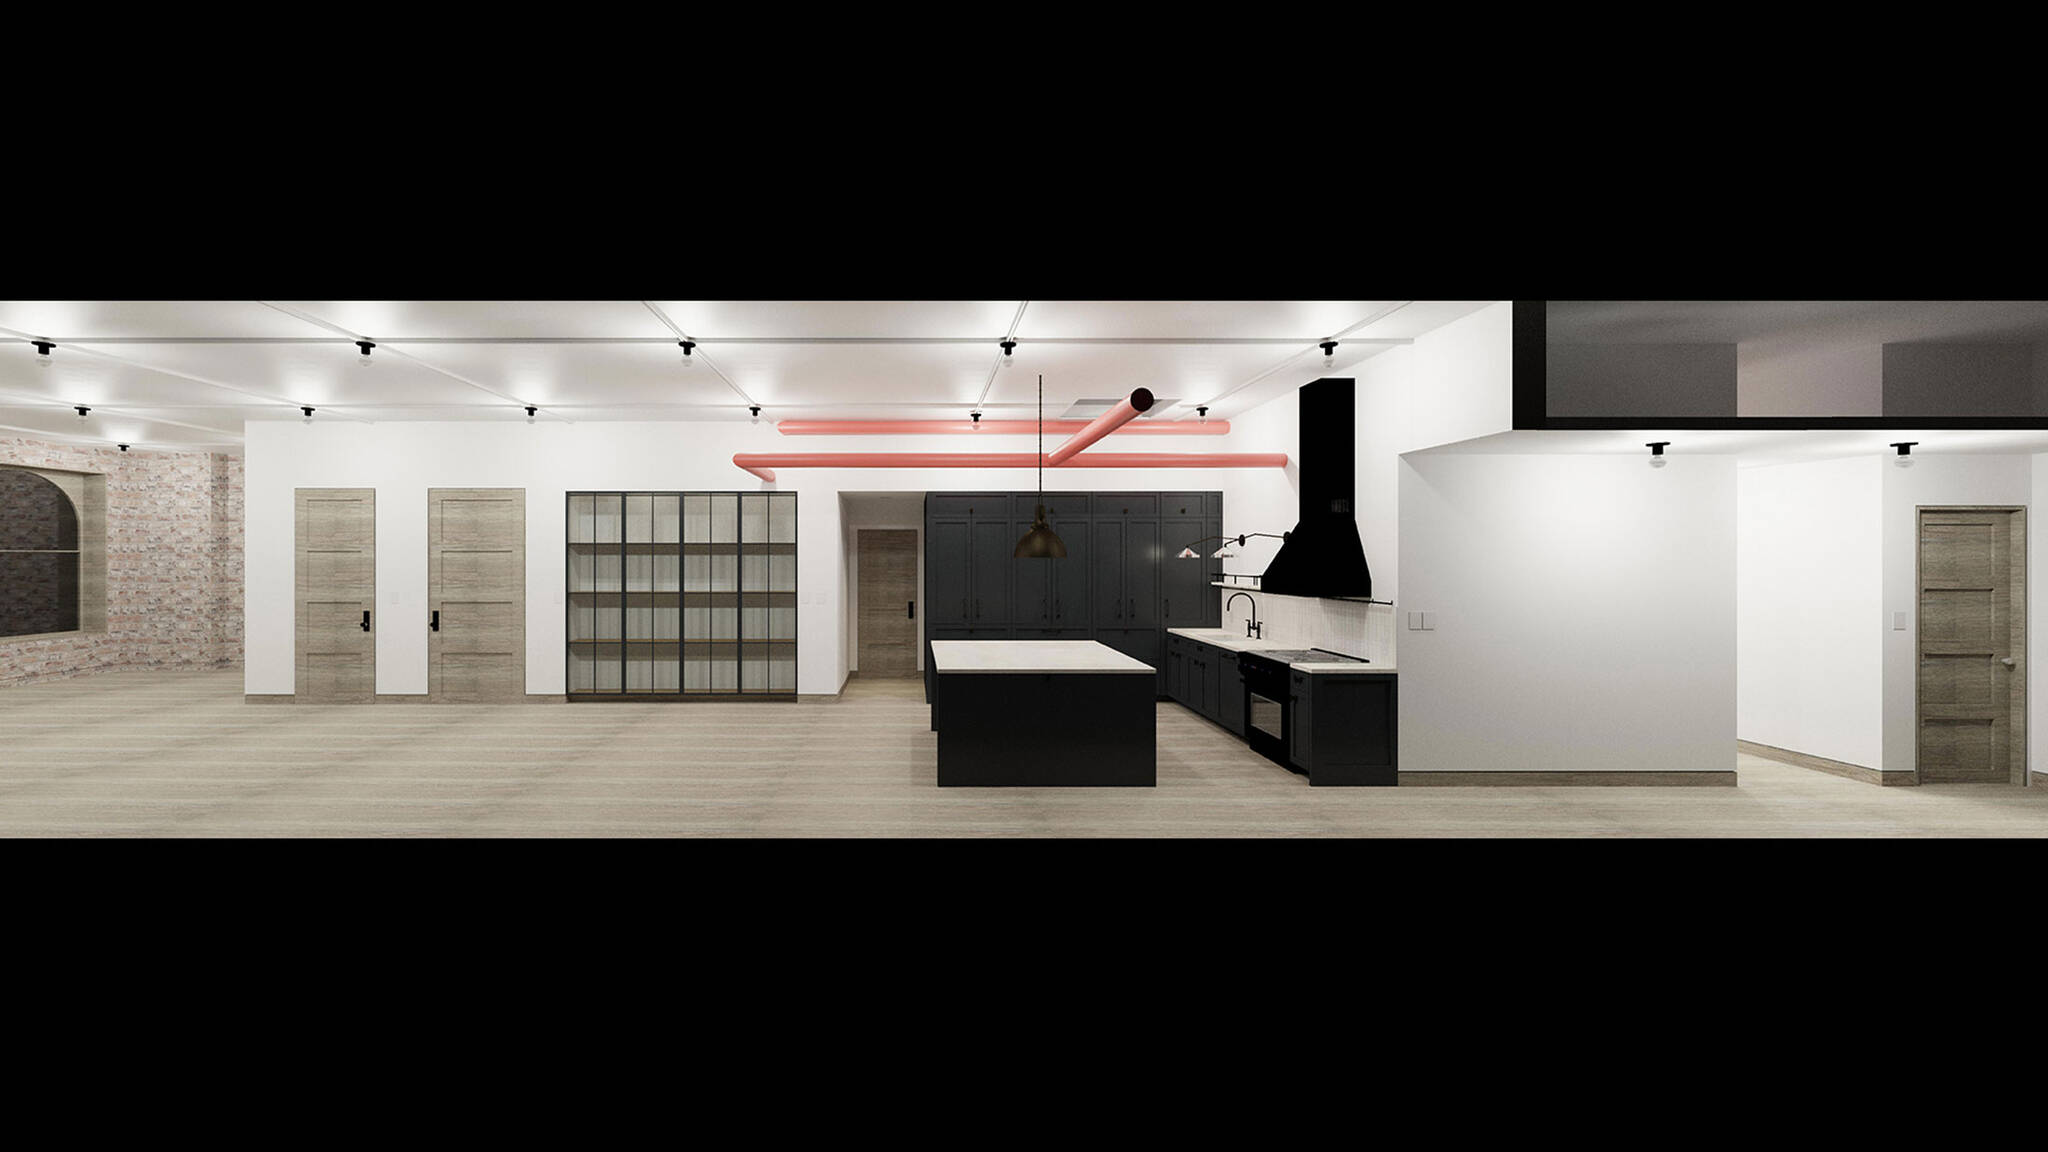 Panoramic section view of the Residence renovation project on the East Side of Manhattan, New York City designed by the architecture studio Danny Forster & Architecture